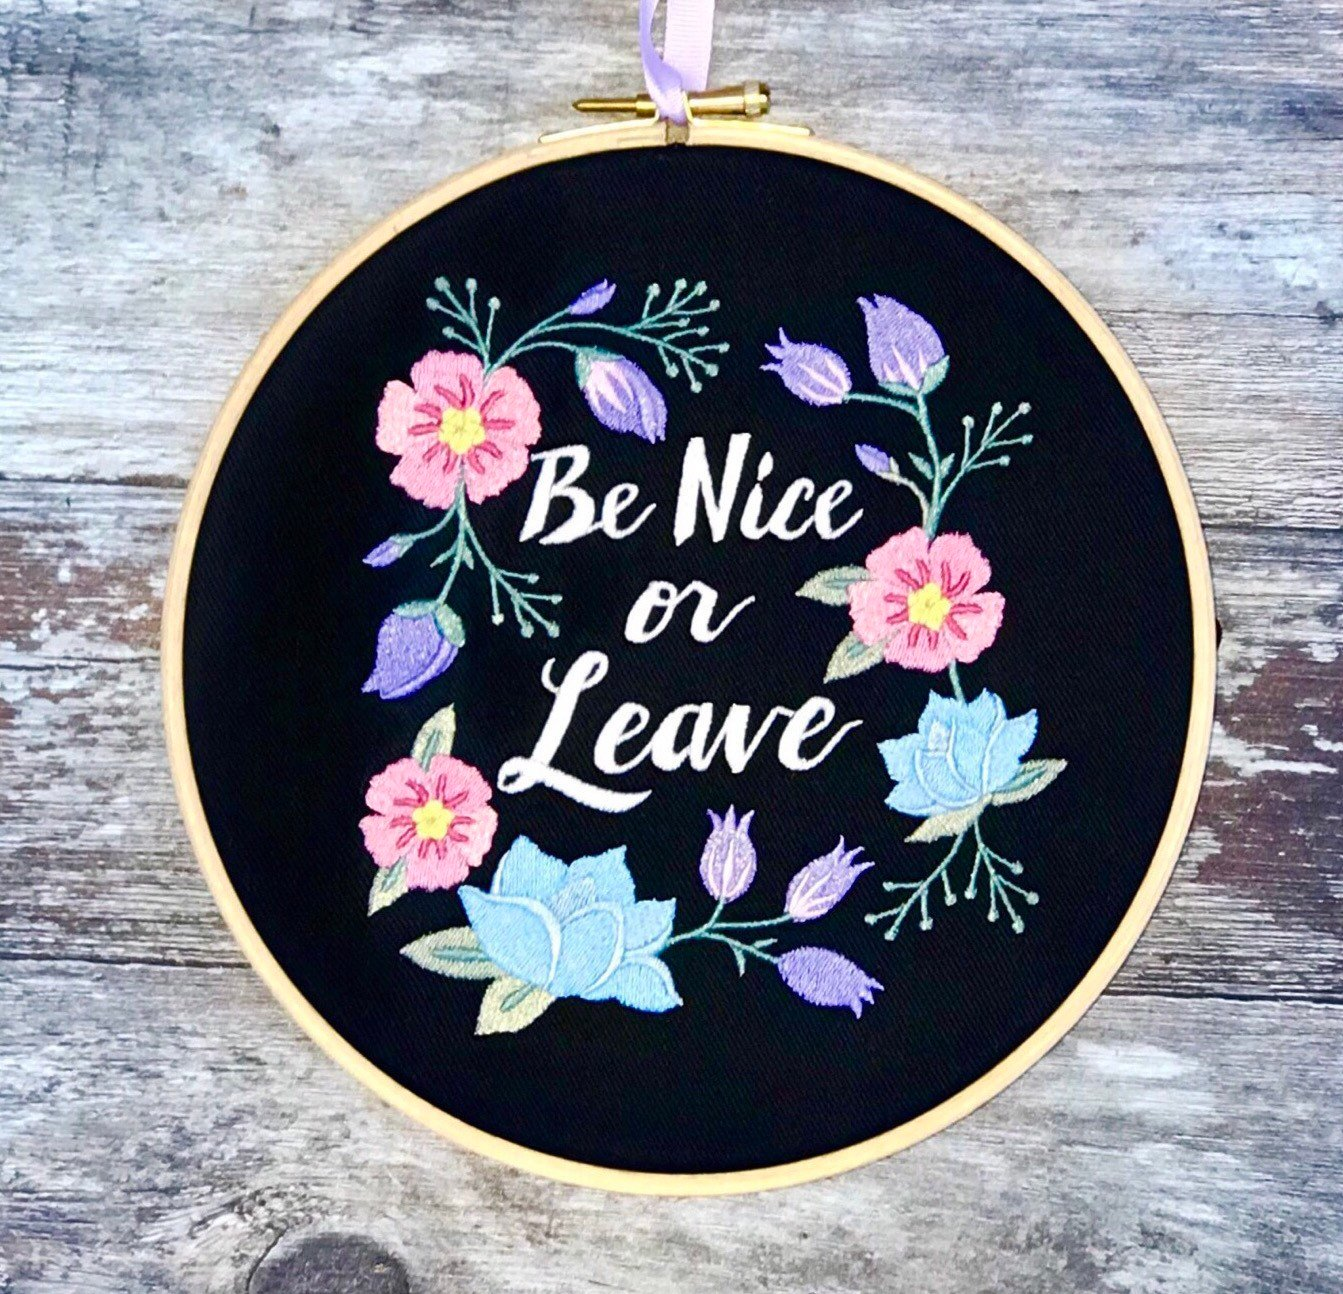 Be nice or leave with floral wreath, Embroidery hoop art